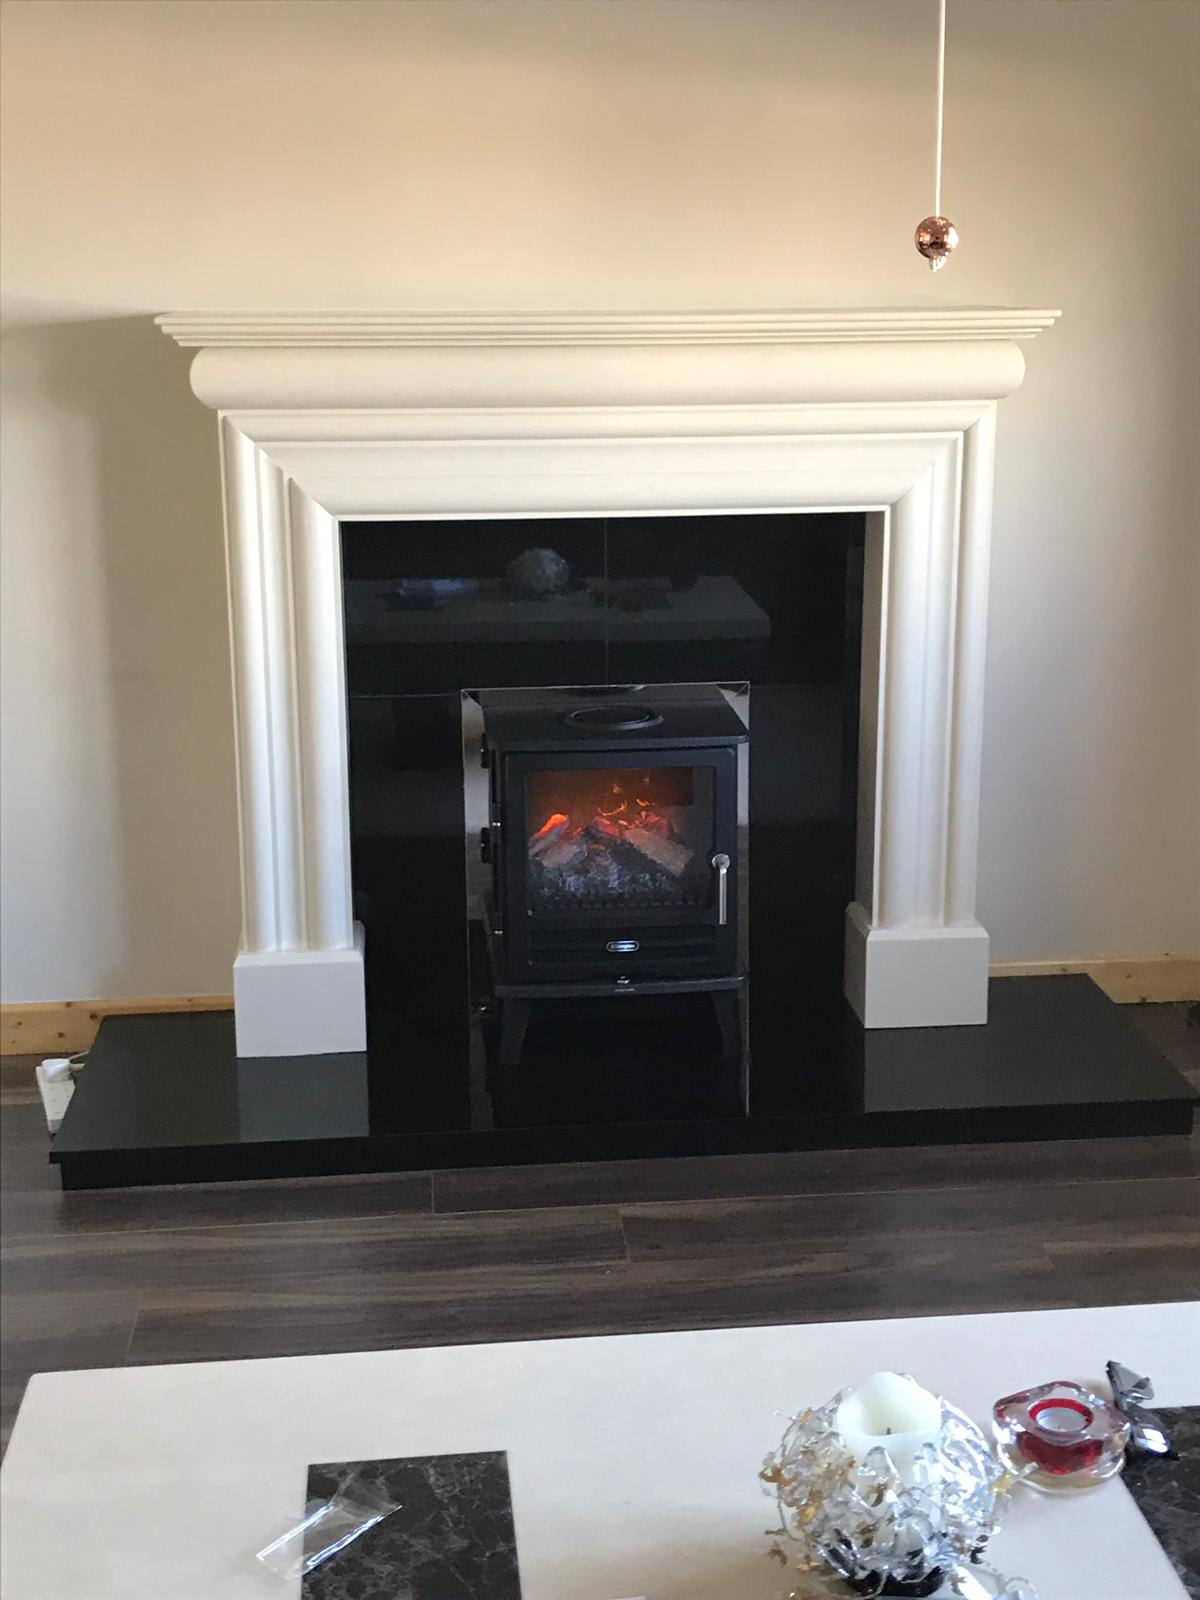 Wexford fireplace with Willowbrook electric stove